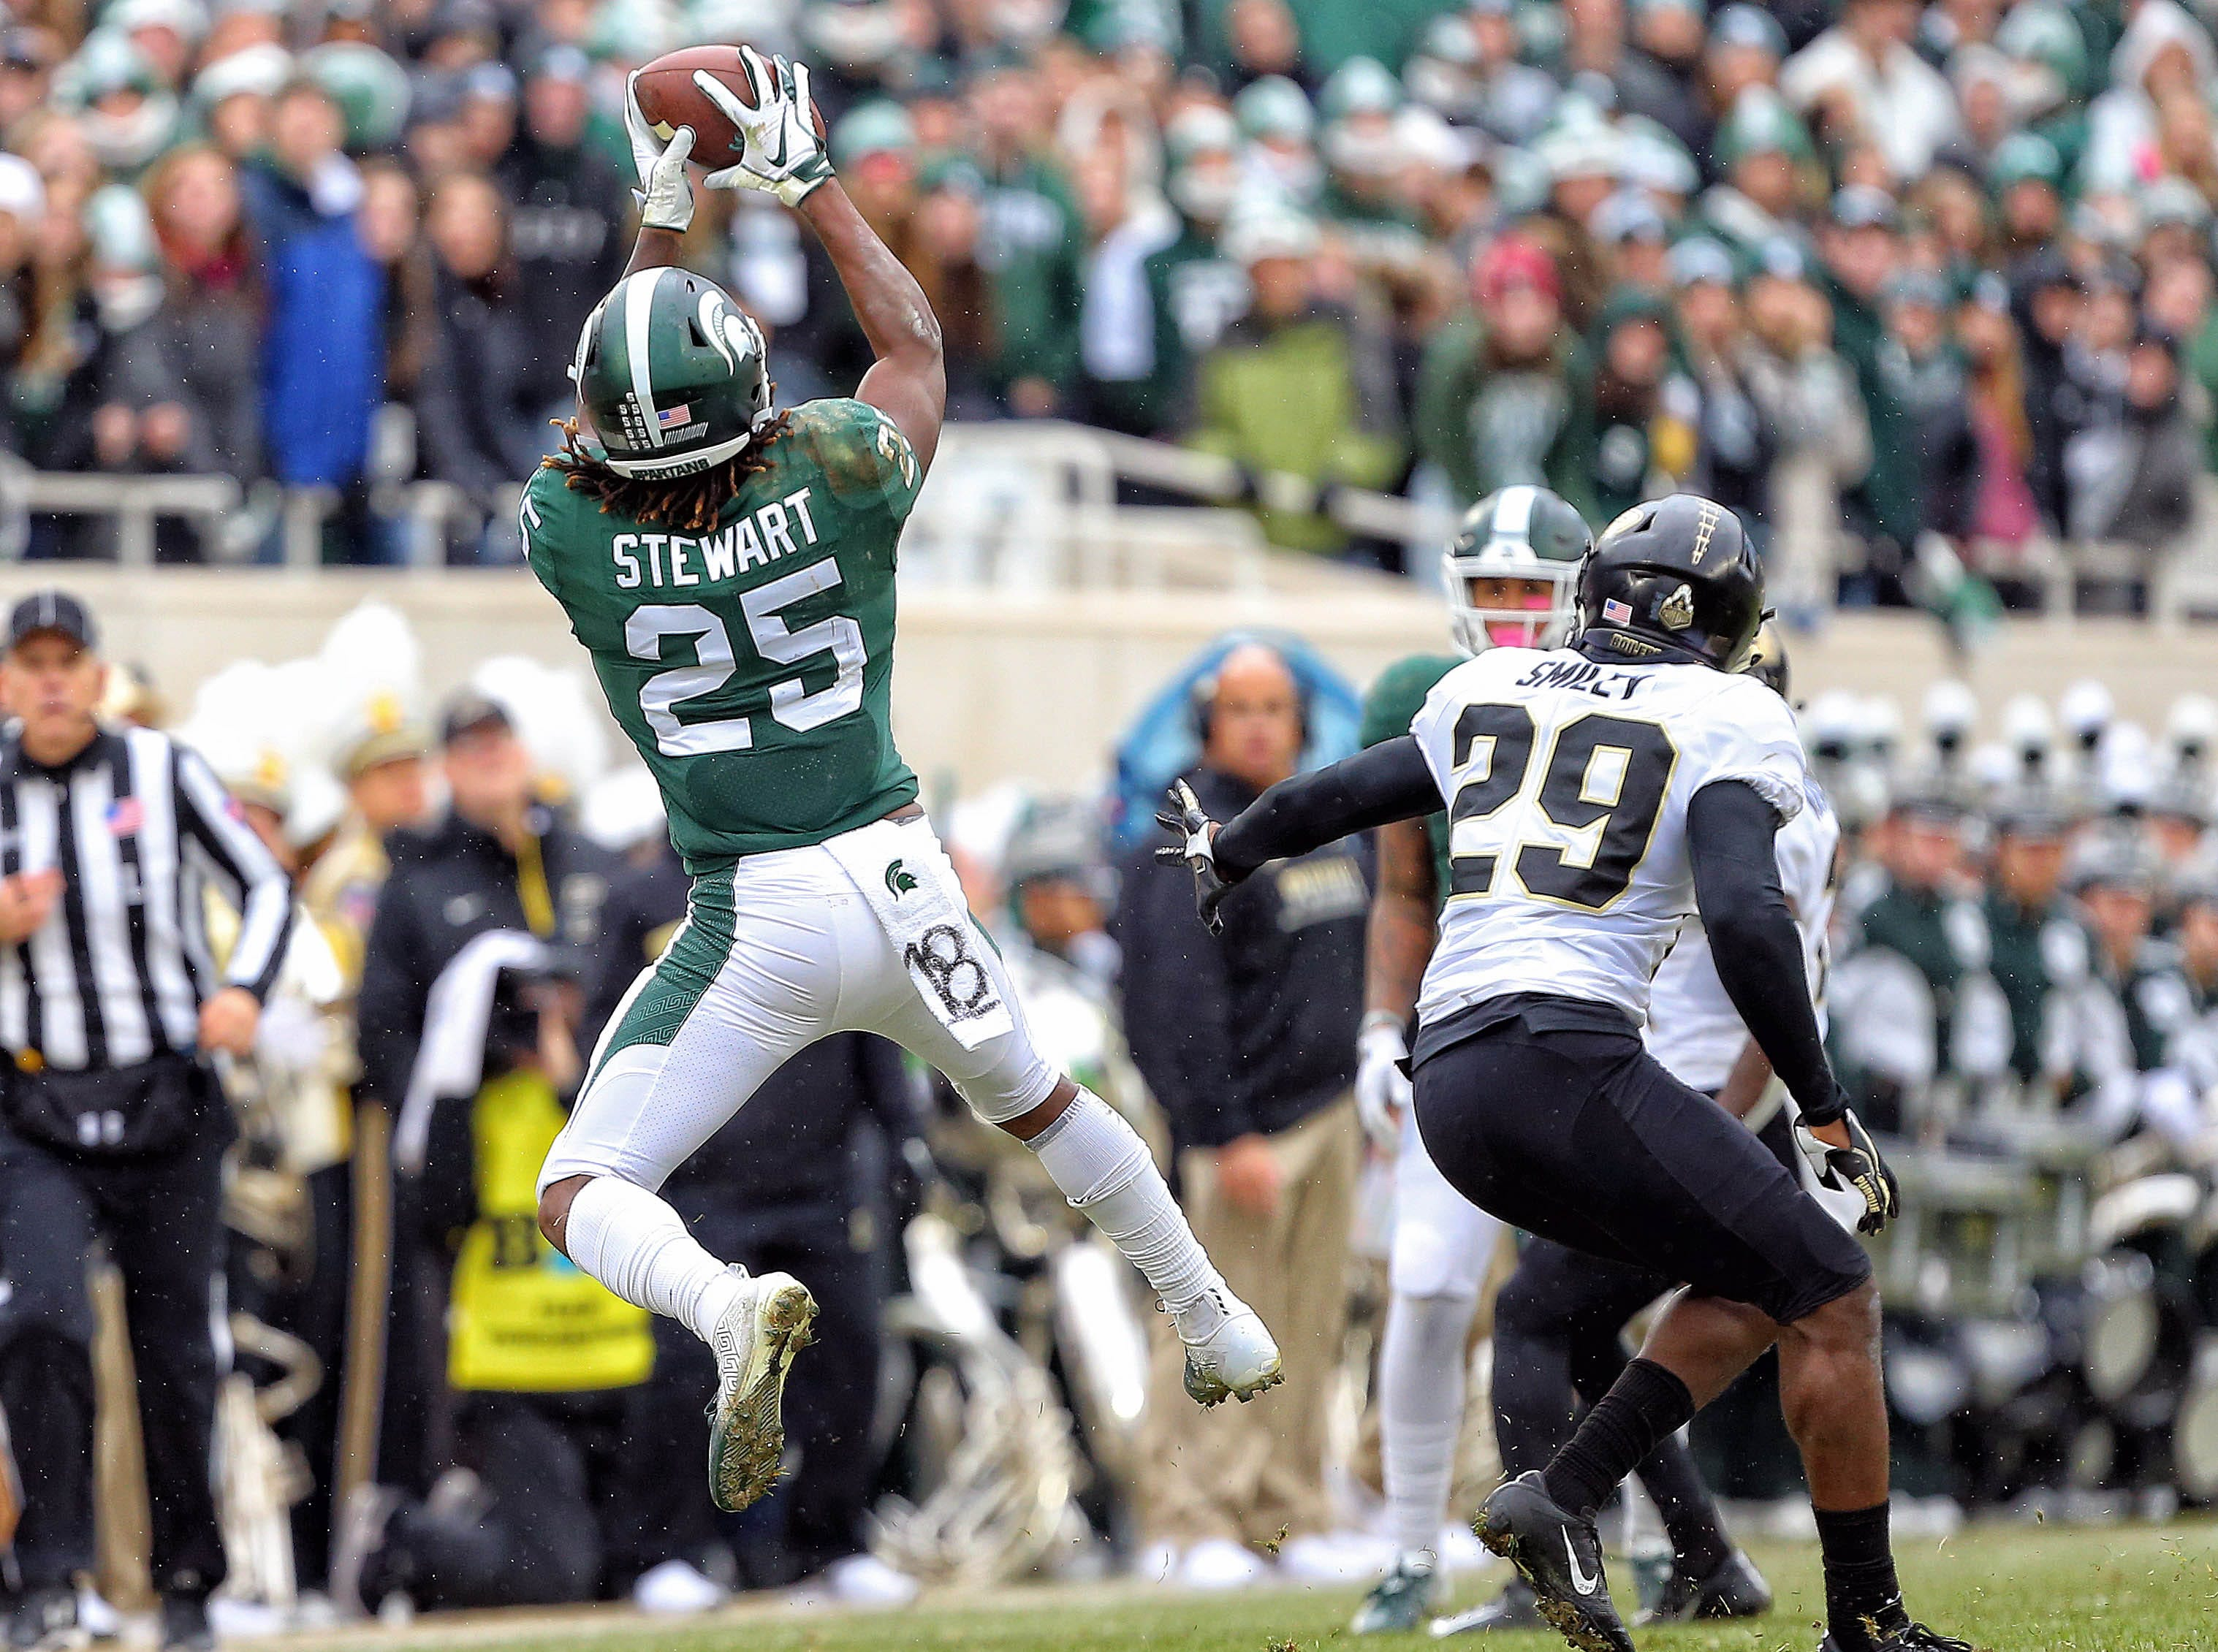 Michigan State Spartans wide receiver Darrell Stewart Jr. (25) makes a catch against Purdue Boilermakers cornerback Simeon Smiley (29) during the first half of a game at Spartan Stadium on Oct. 27, 2018.